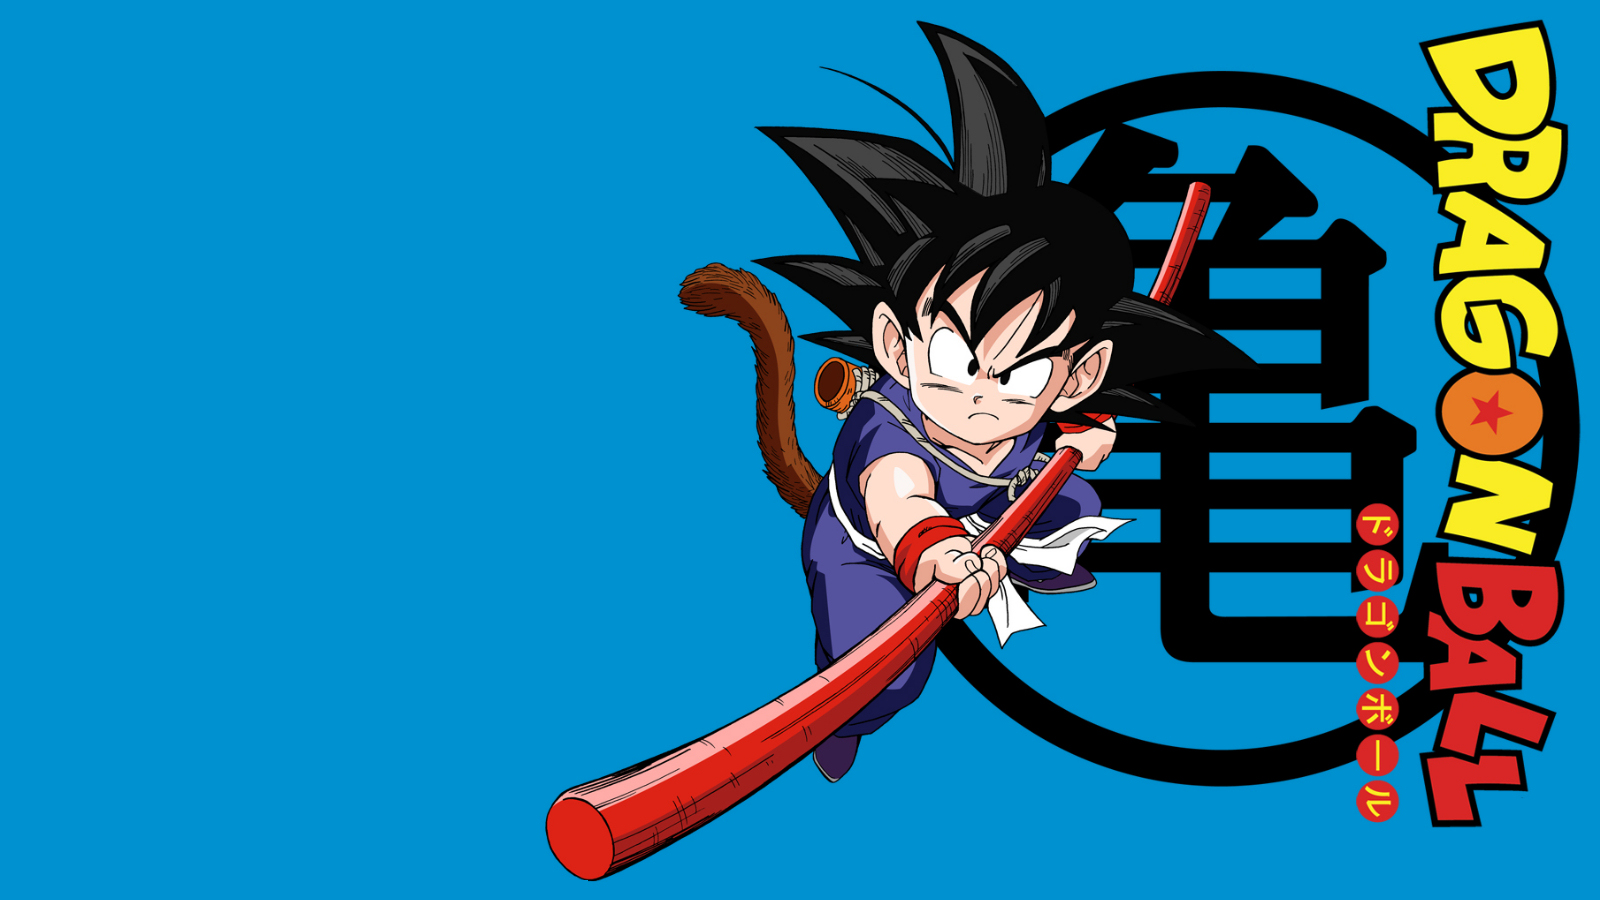 Fondos De Pantalla De Dragon Ball: >>3 Dragon Balls Wallpaper